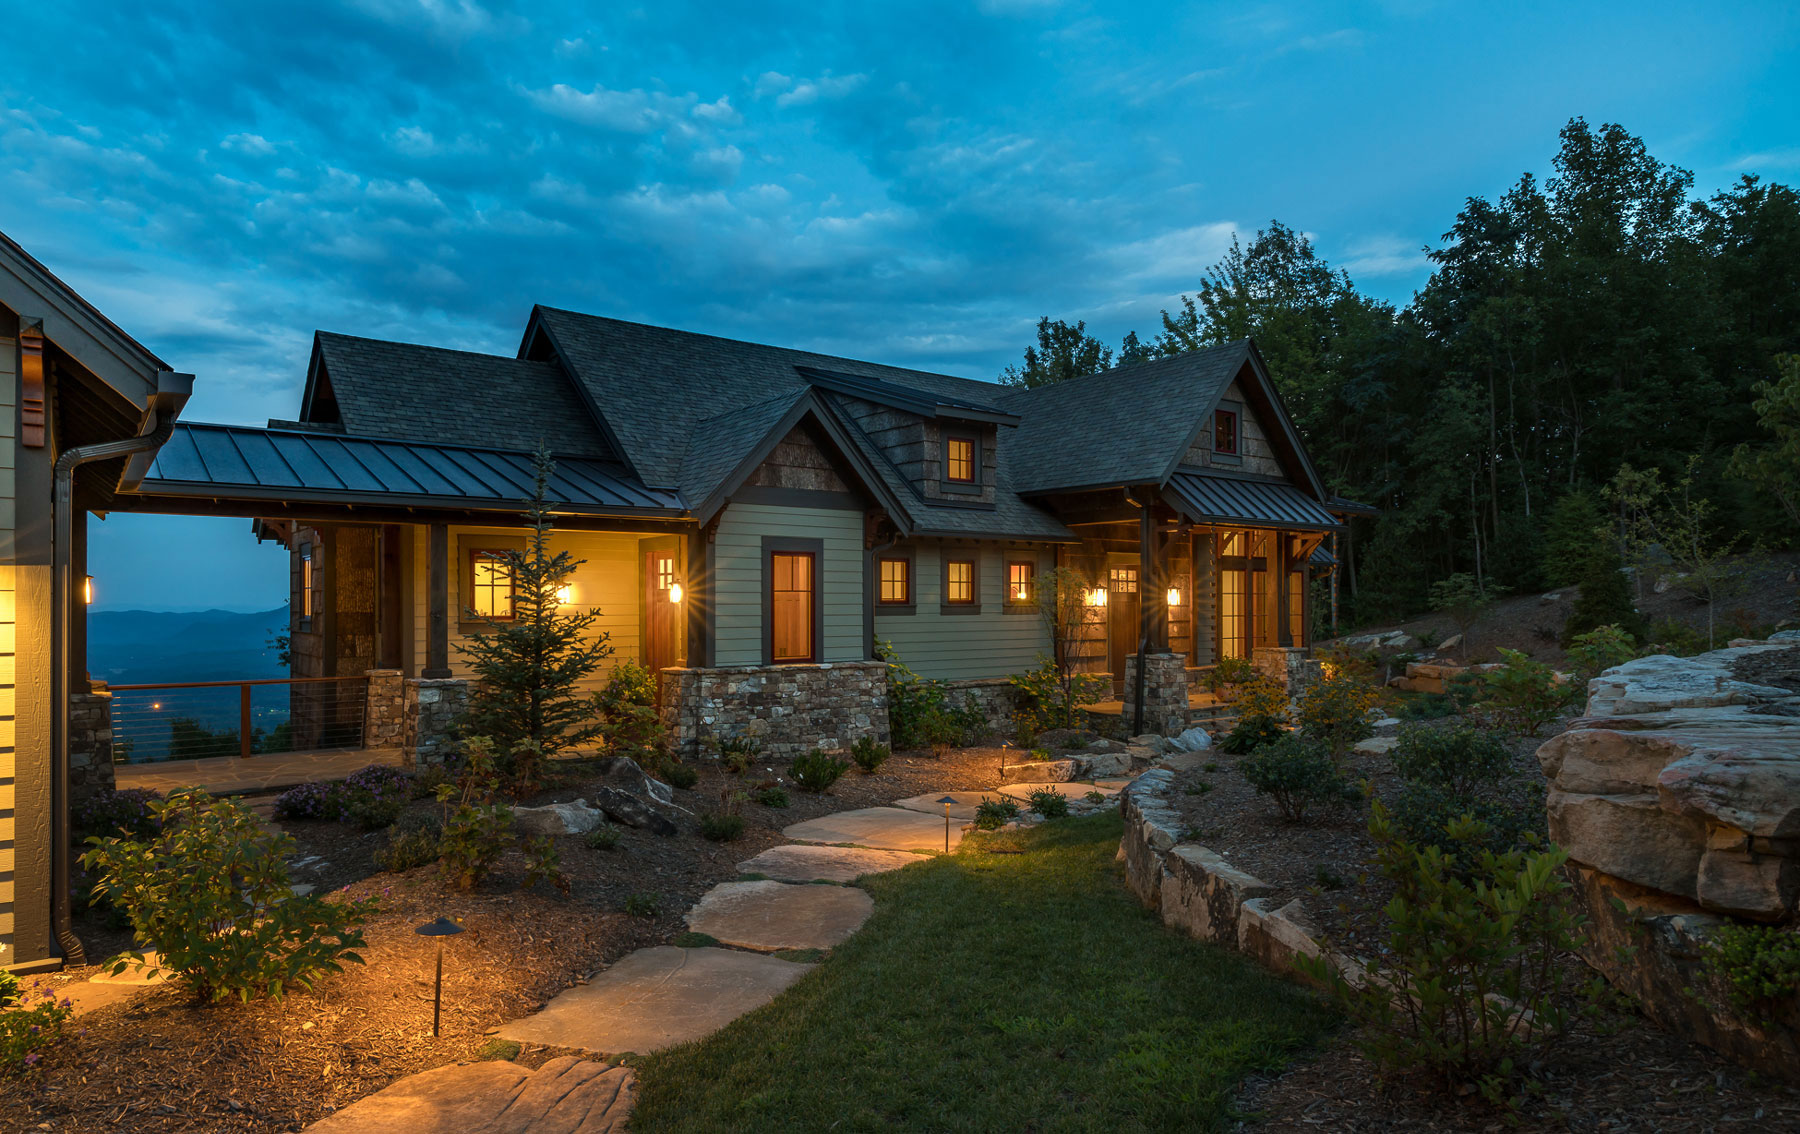 Portfolio of Custom Mountain Homes and Renovations, Outdoor Living Designs, and Interior Design Services